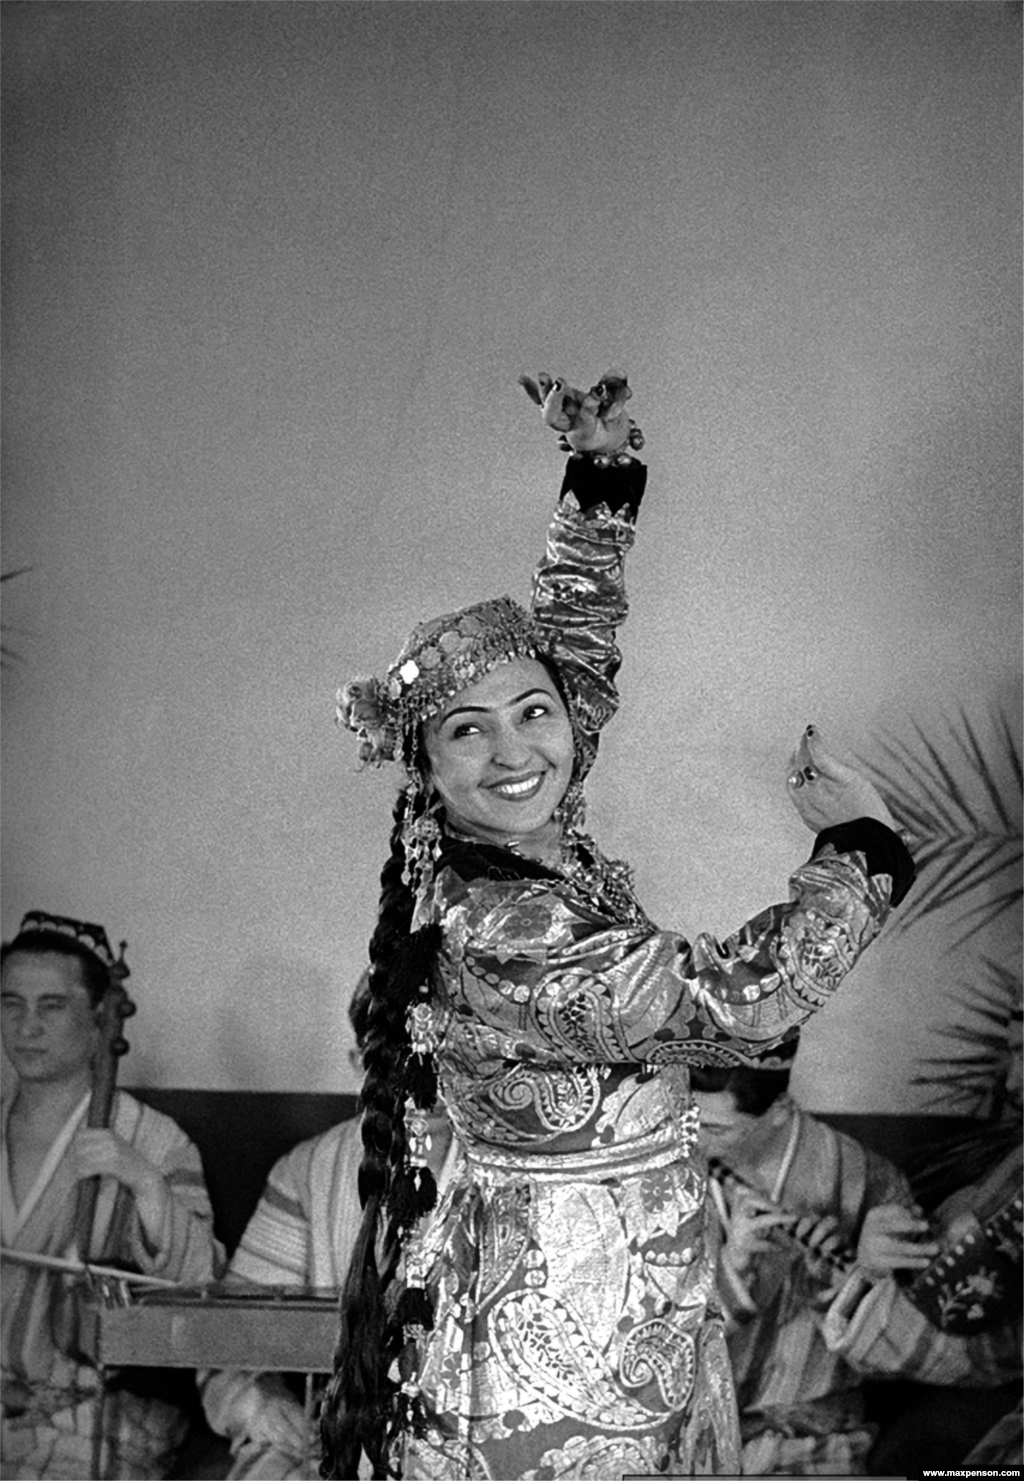 Tamara Khanum, an Uzbek dancer of Armenian origin who was famous for being the first Uzbek woman to perform without an Islamic veil.